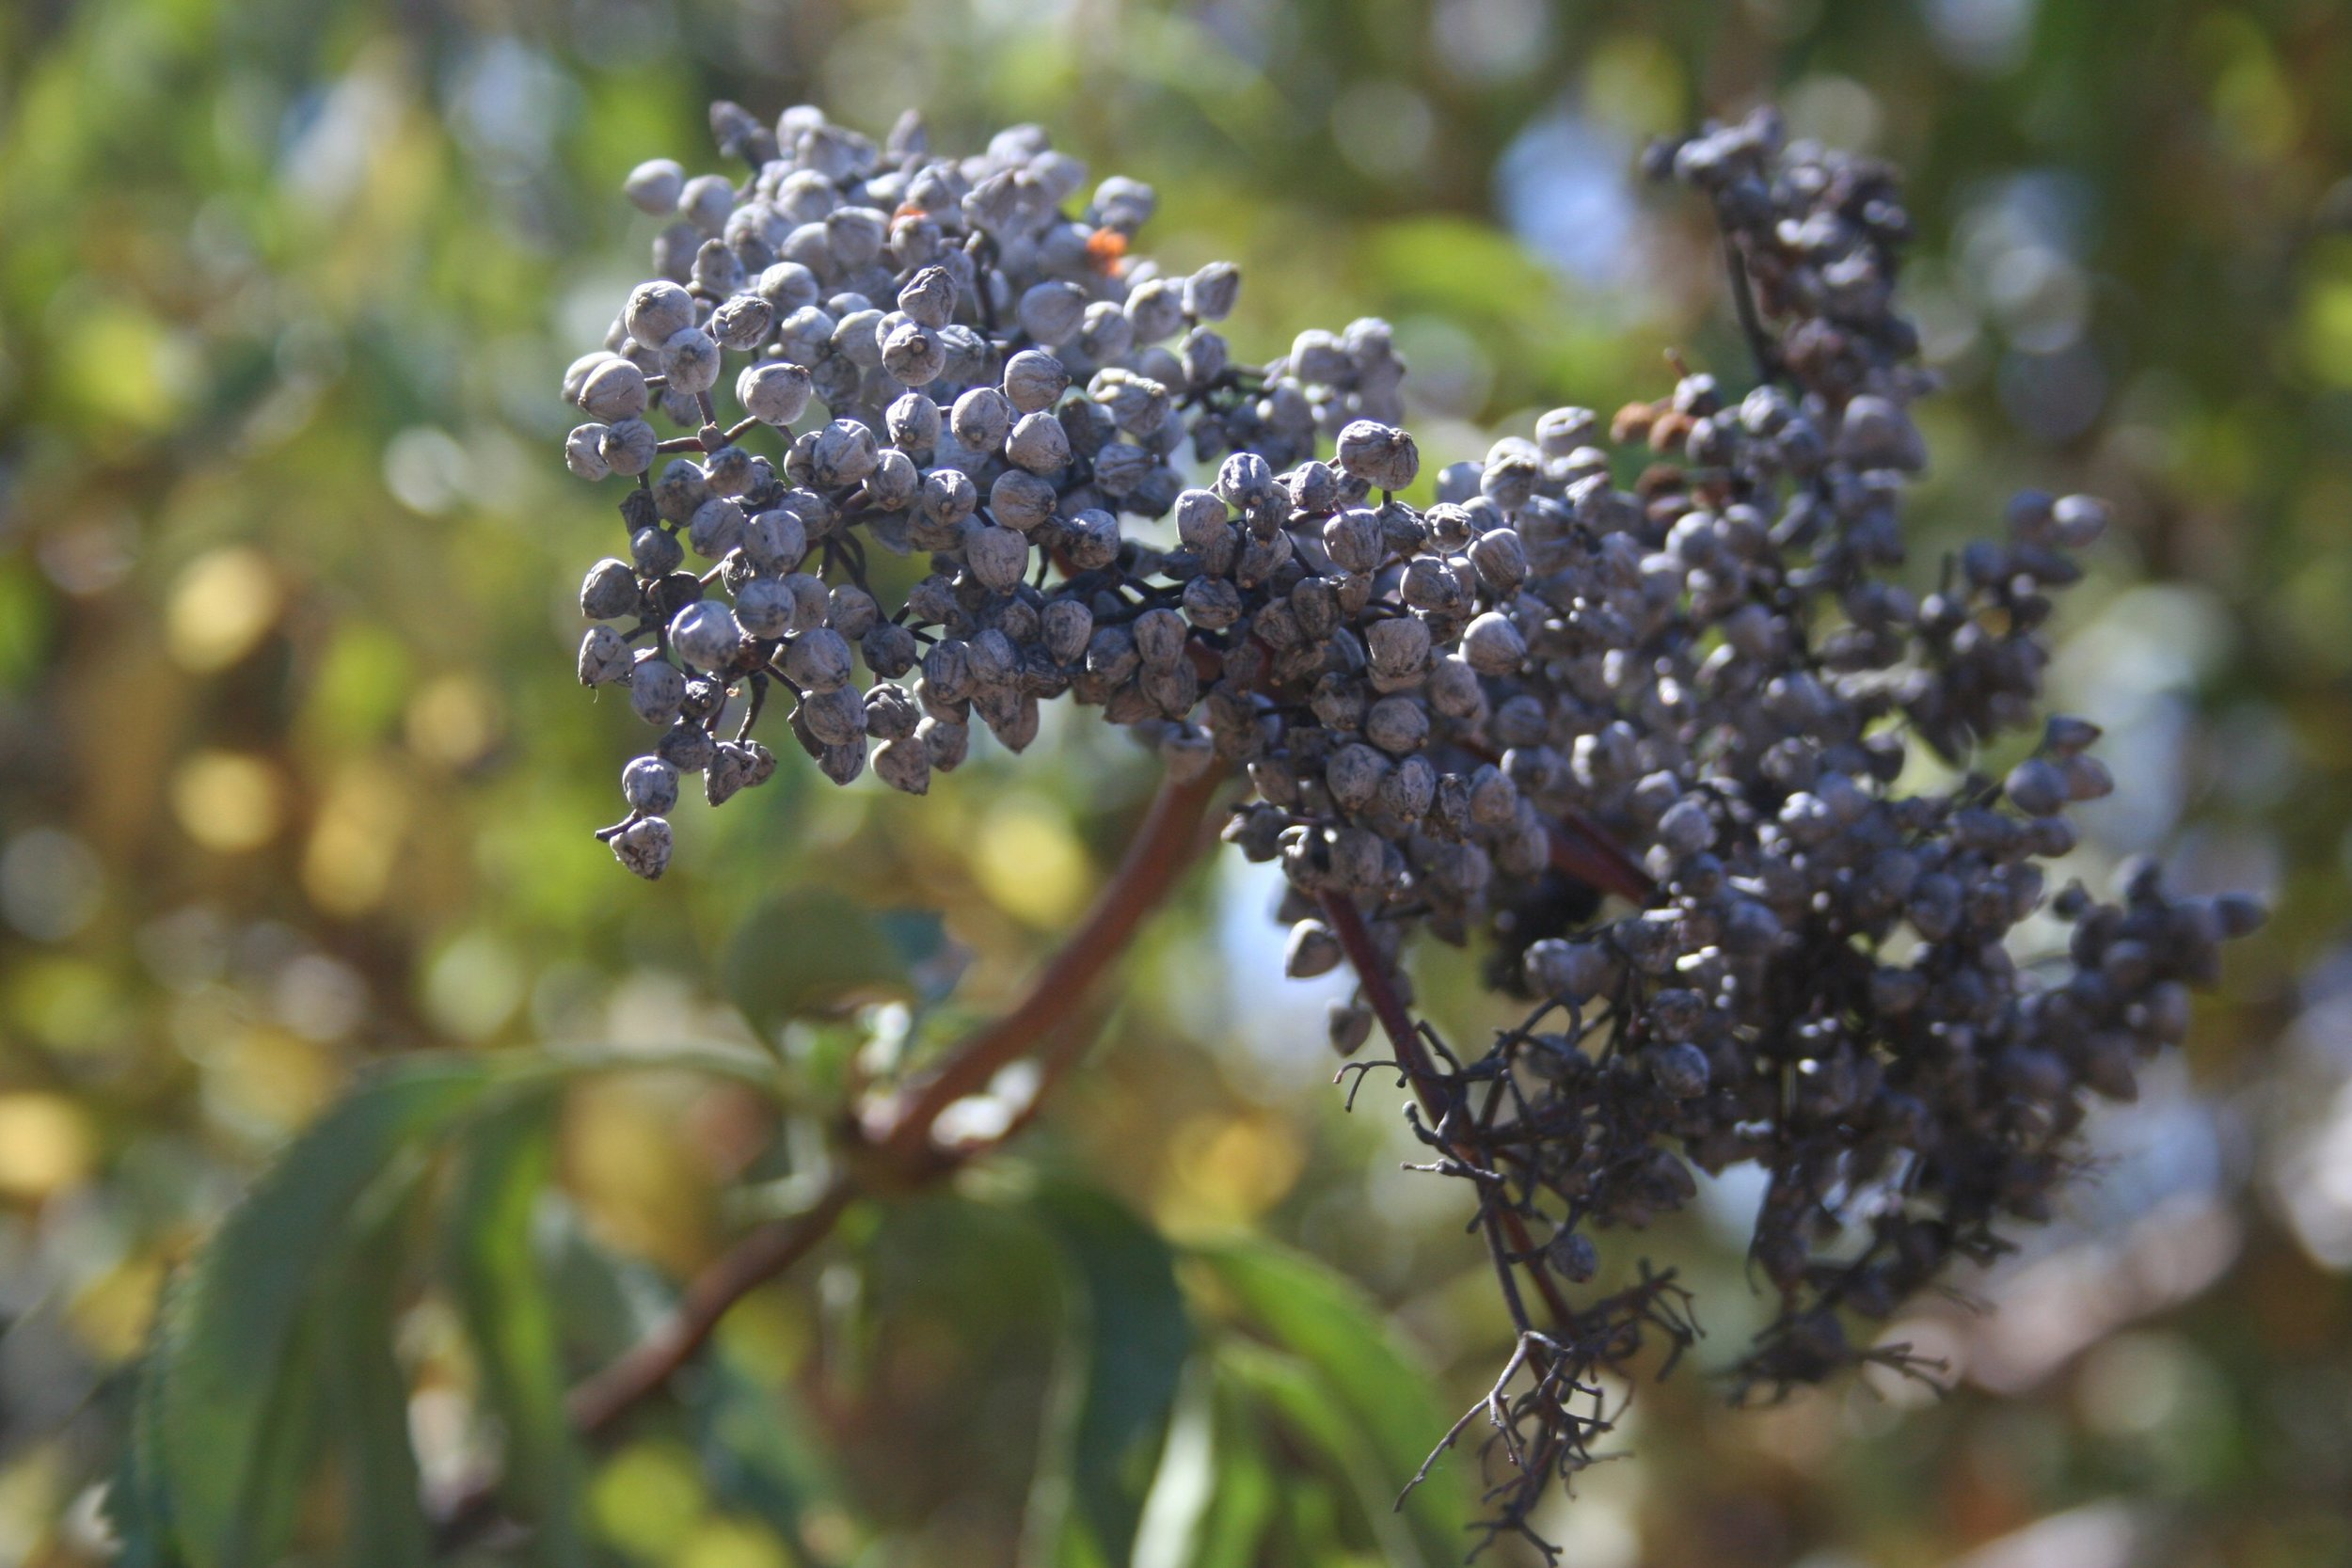 Blue Elder in Yosemite NP. Photographed in September (2016?) the berries are wilted from the sun but still usable.